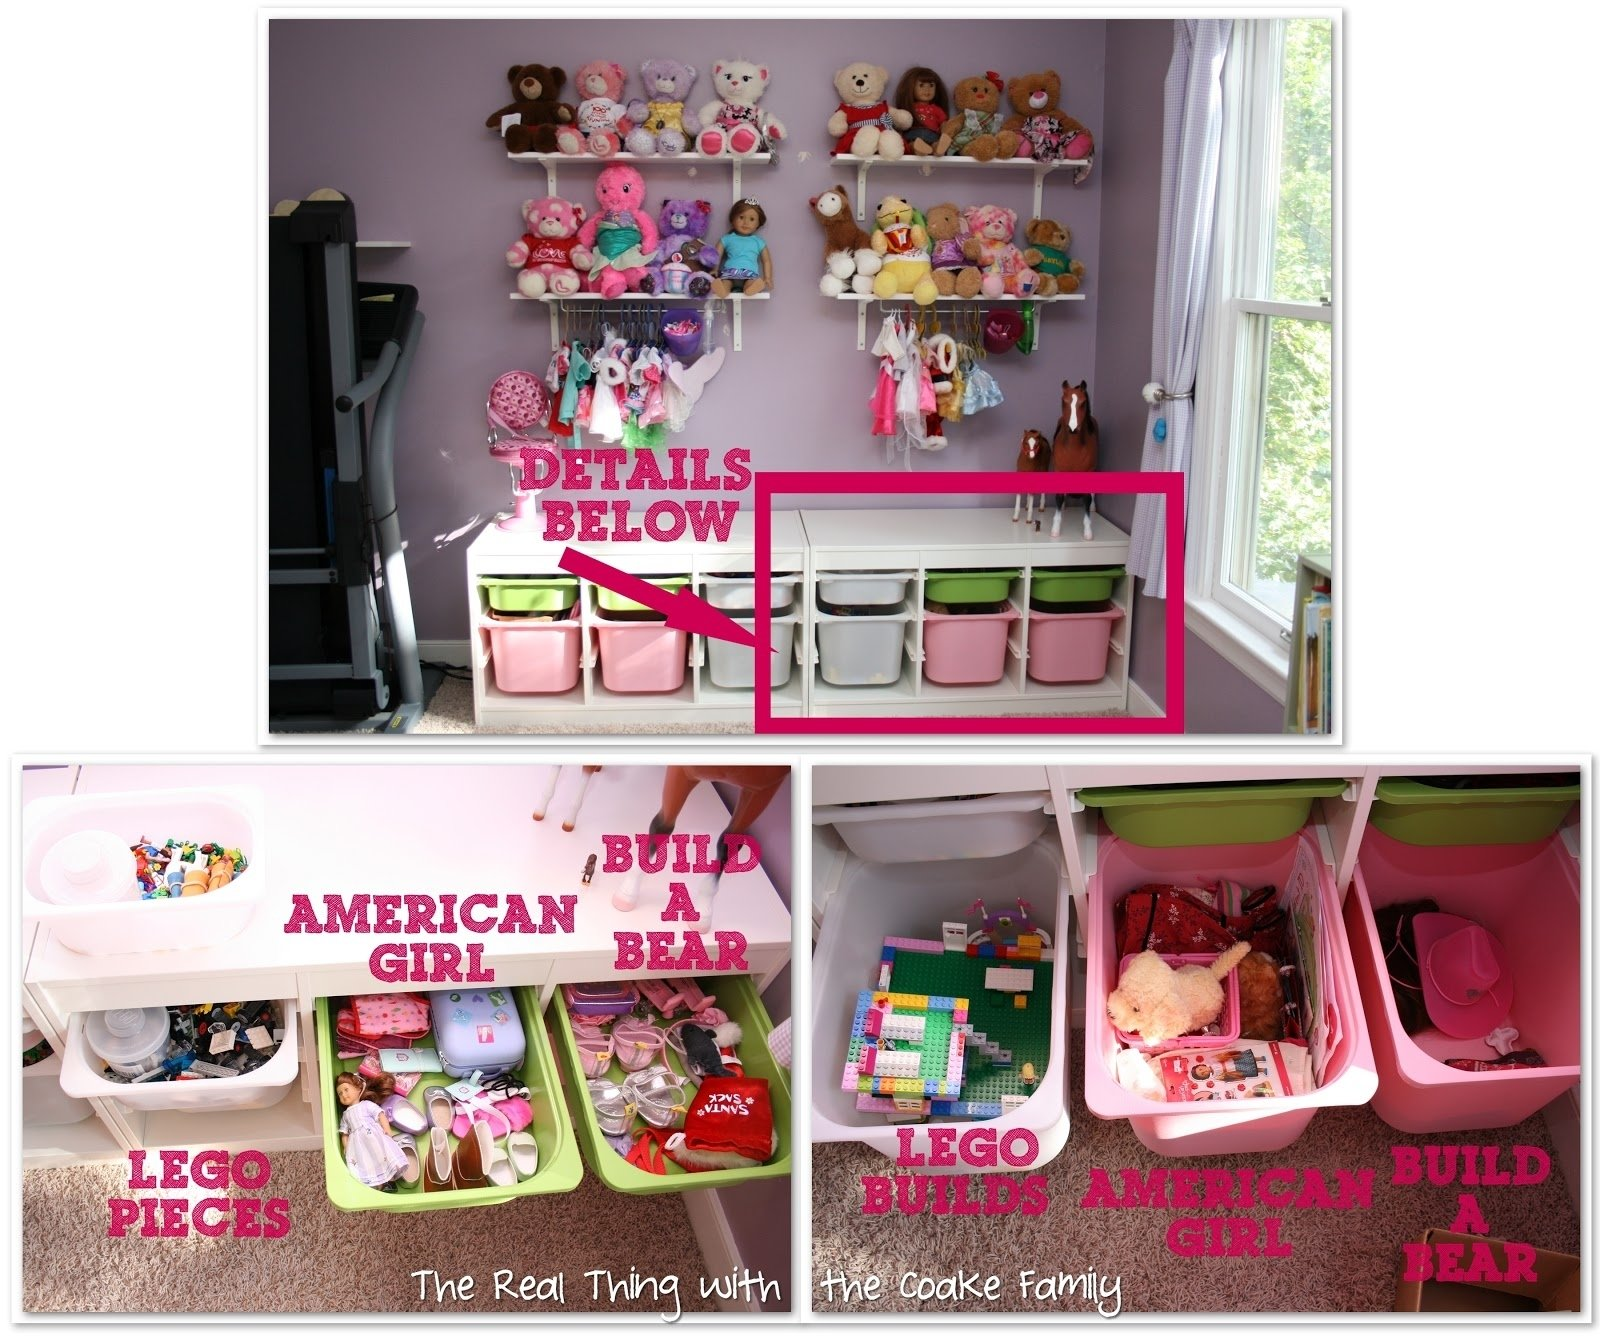 10 Spectacular American Girl Doll Storage Ideas toy storage kids playroom reorganization the real thing with the 2020